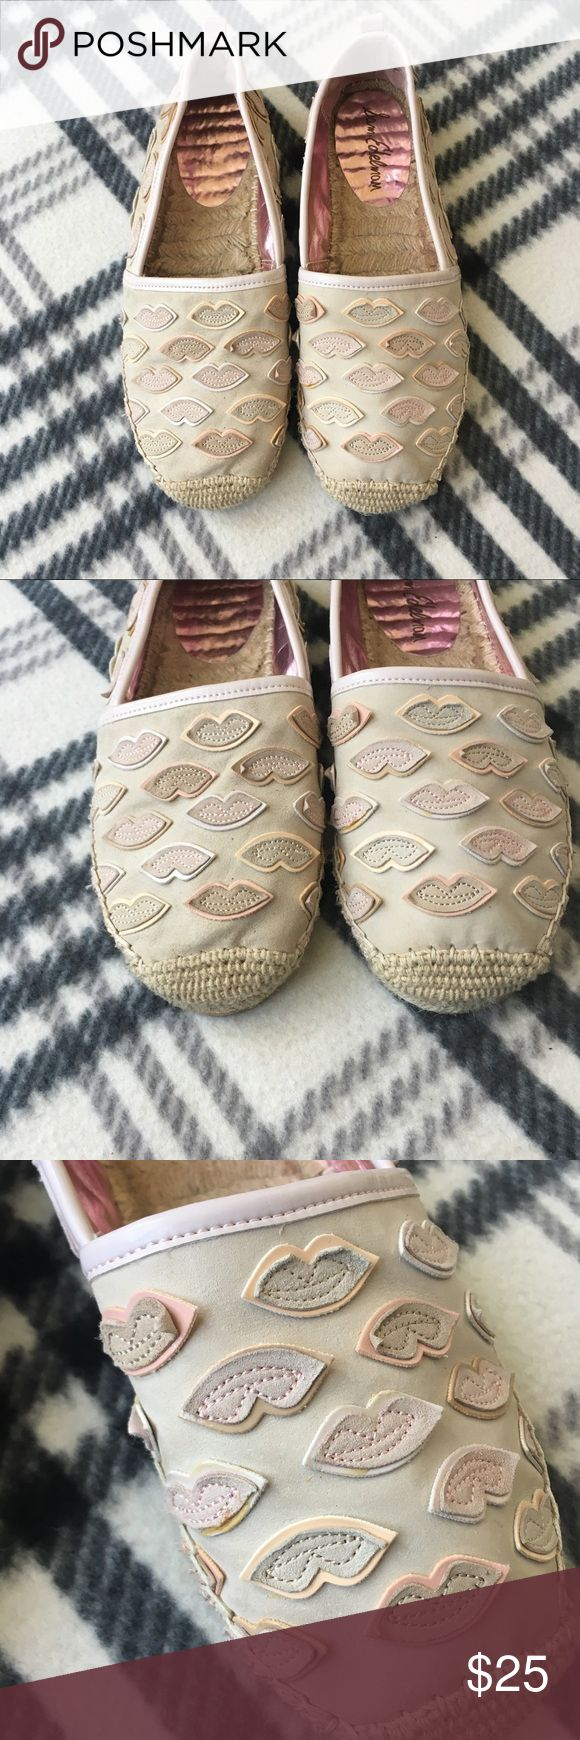 Sam Edelman espadrilles lulu lips flats 8.5 Good condition  Shows some wear in the inner sole  Small marks of wear in the outside  Overall good condition  No tears or stains  From a pet and smoke free home Sam Edelman Shoes Espadrilles